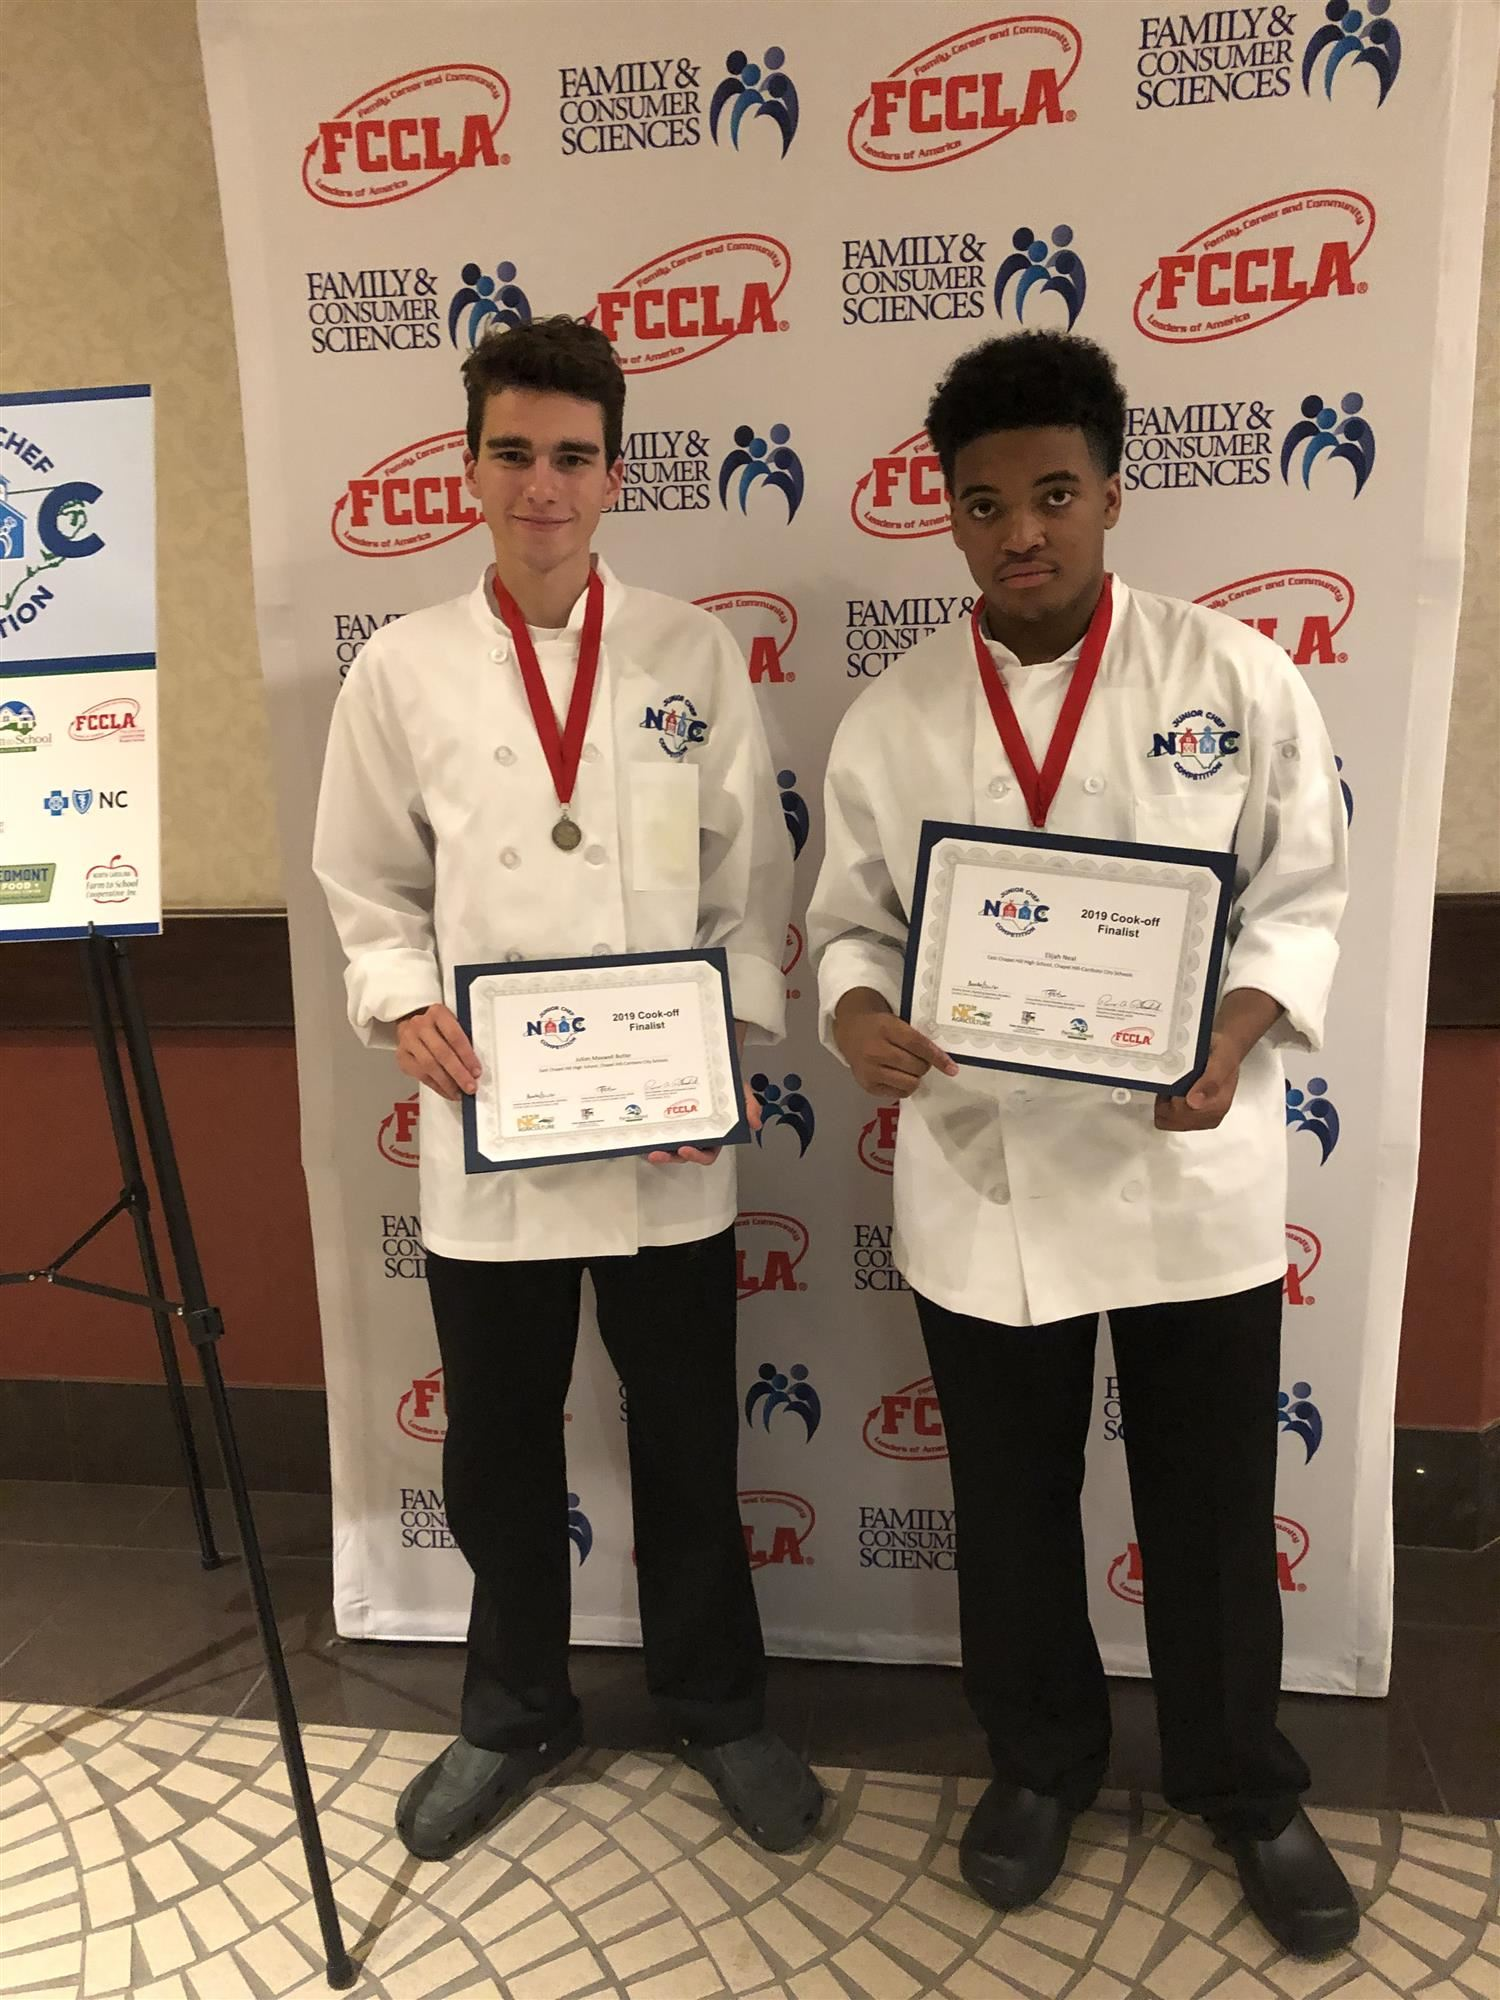 East students with Jr Chef awards